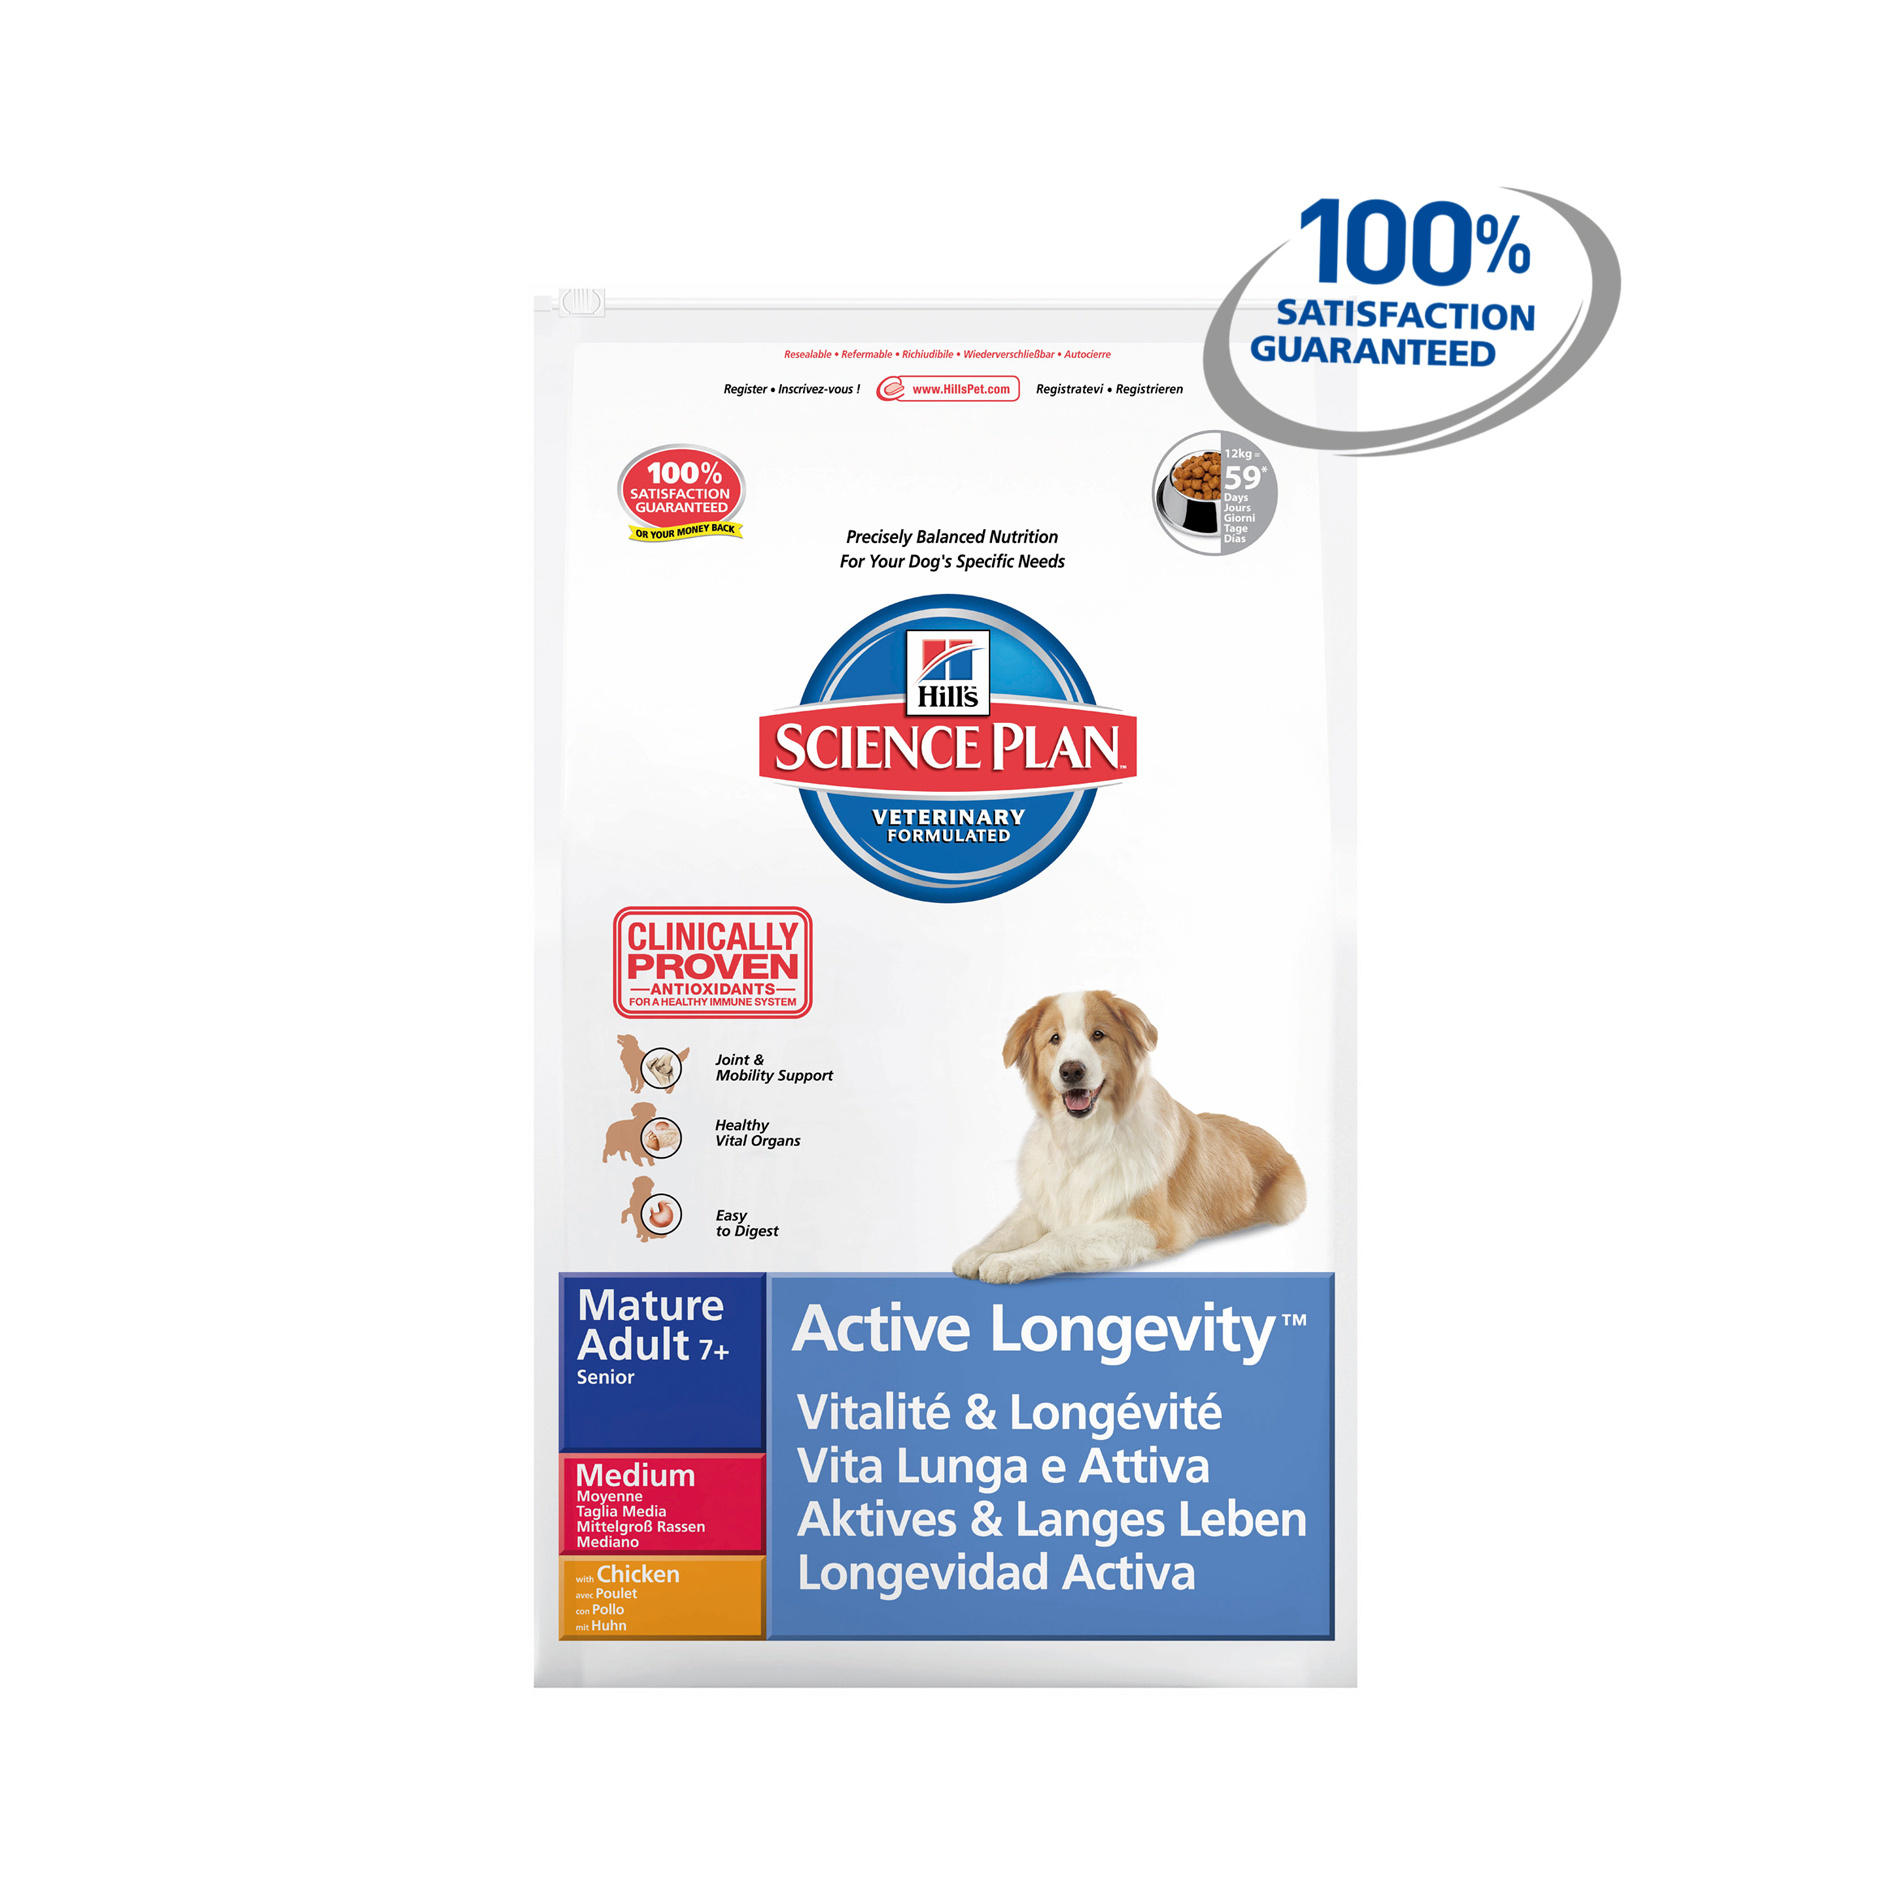 Hills Science Plan Canine Mature Adult 7 Active Longevity Medium With Chicken